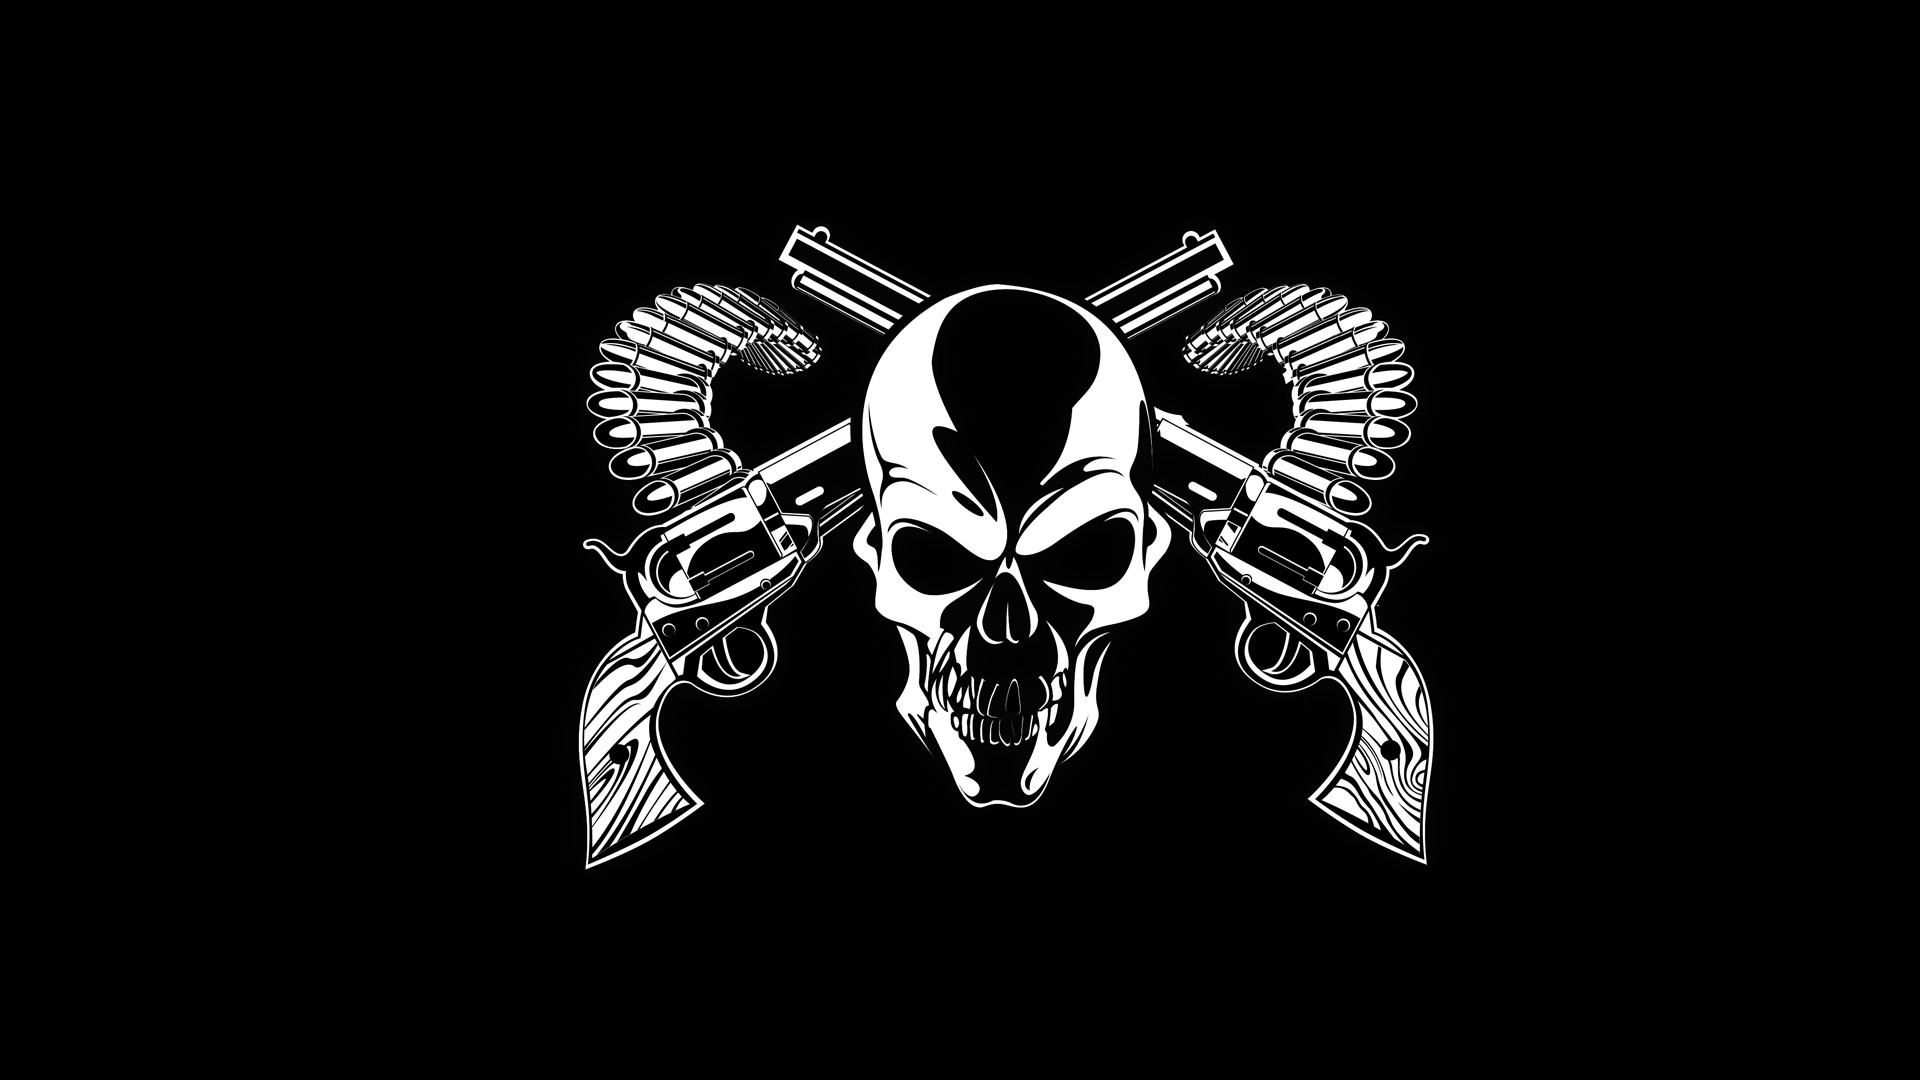 1920x1080 Free Download HD Pirate Skull Wallpapers for Desktop 1920×1080 Pirate  Wallpaper (47 Wallpapers) | Adorable Wallpapers | Desktop | Pinterest |  Wallpaper and ...